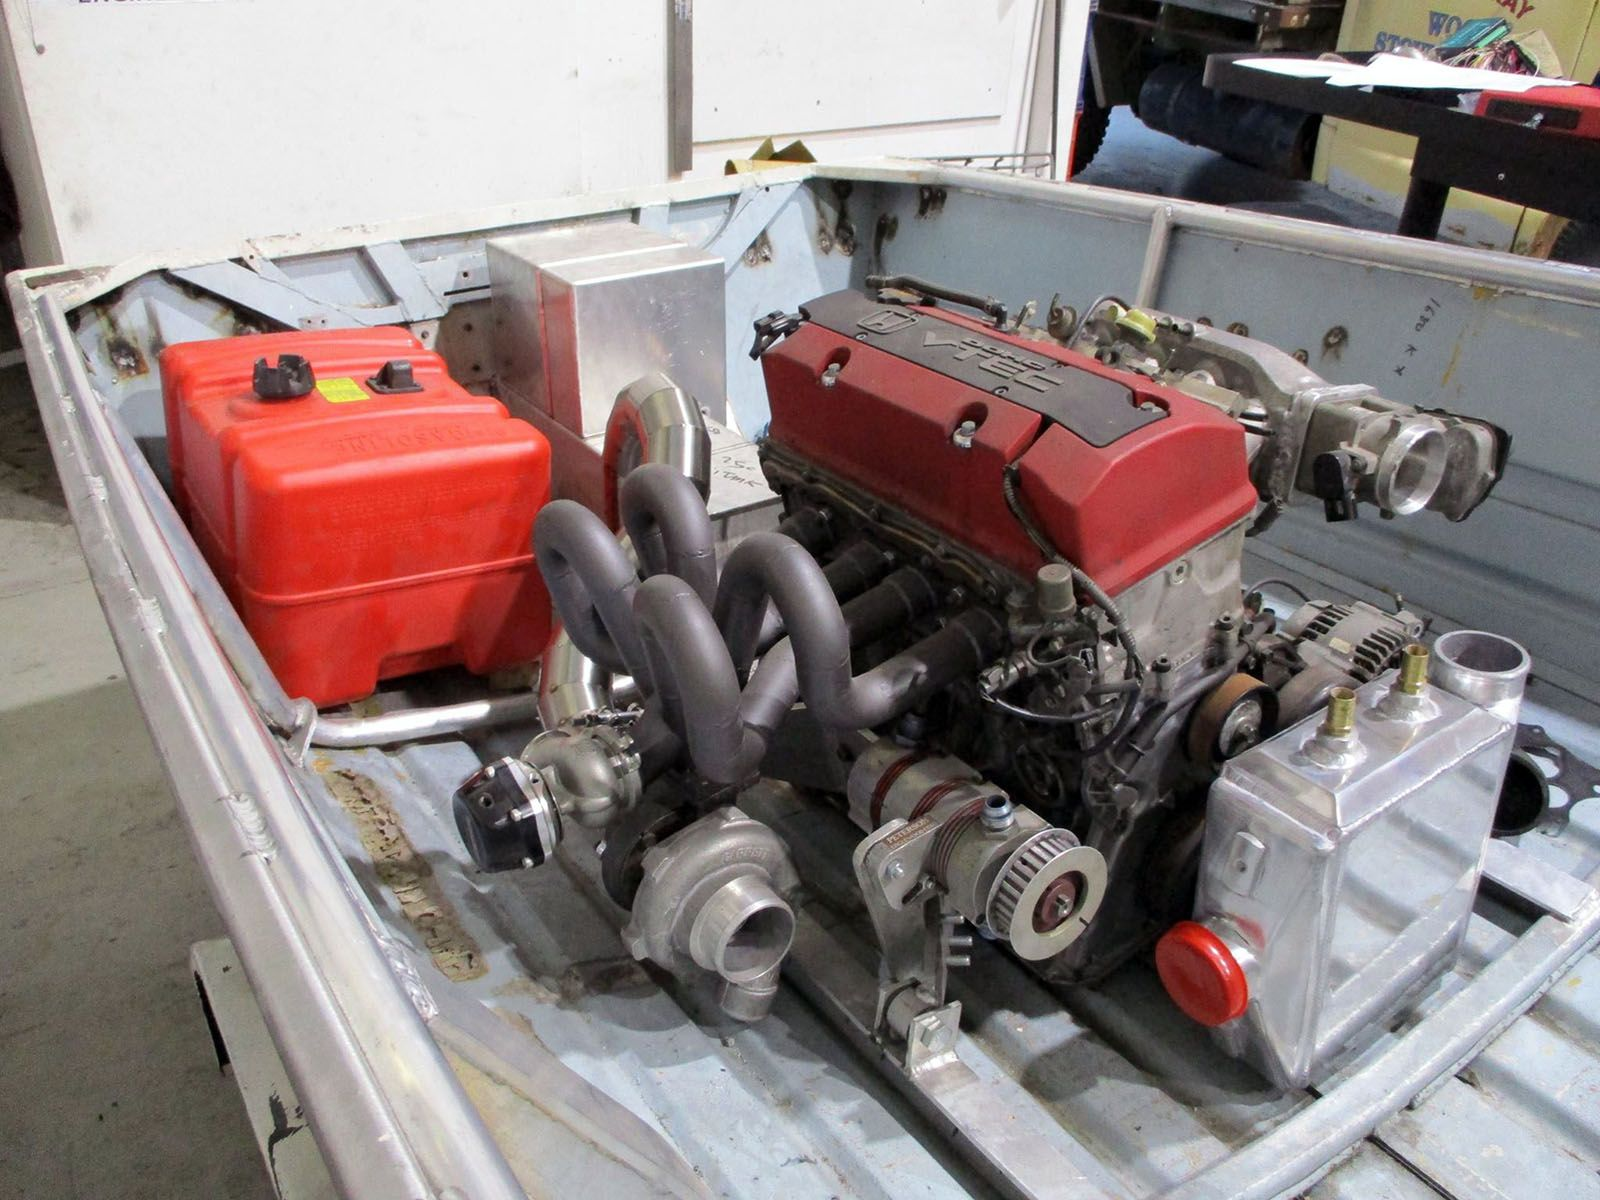 Turbocharged 2 0 L F20c Inline Four In A 13 Foot Boat Power Boats Jet Boats Boat